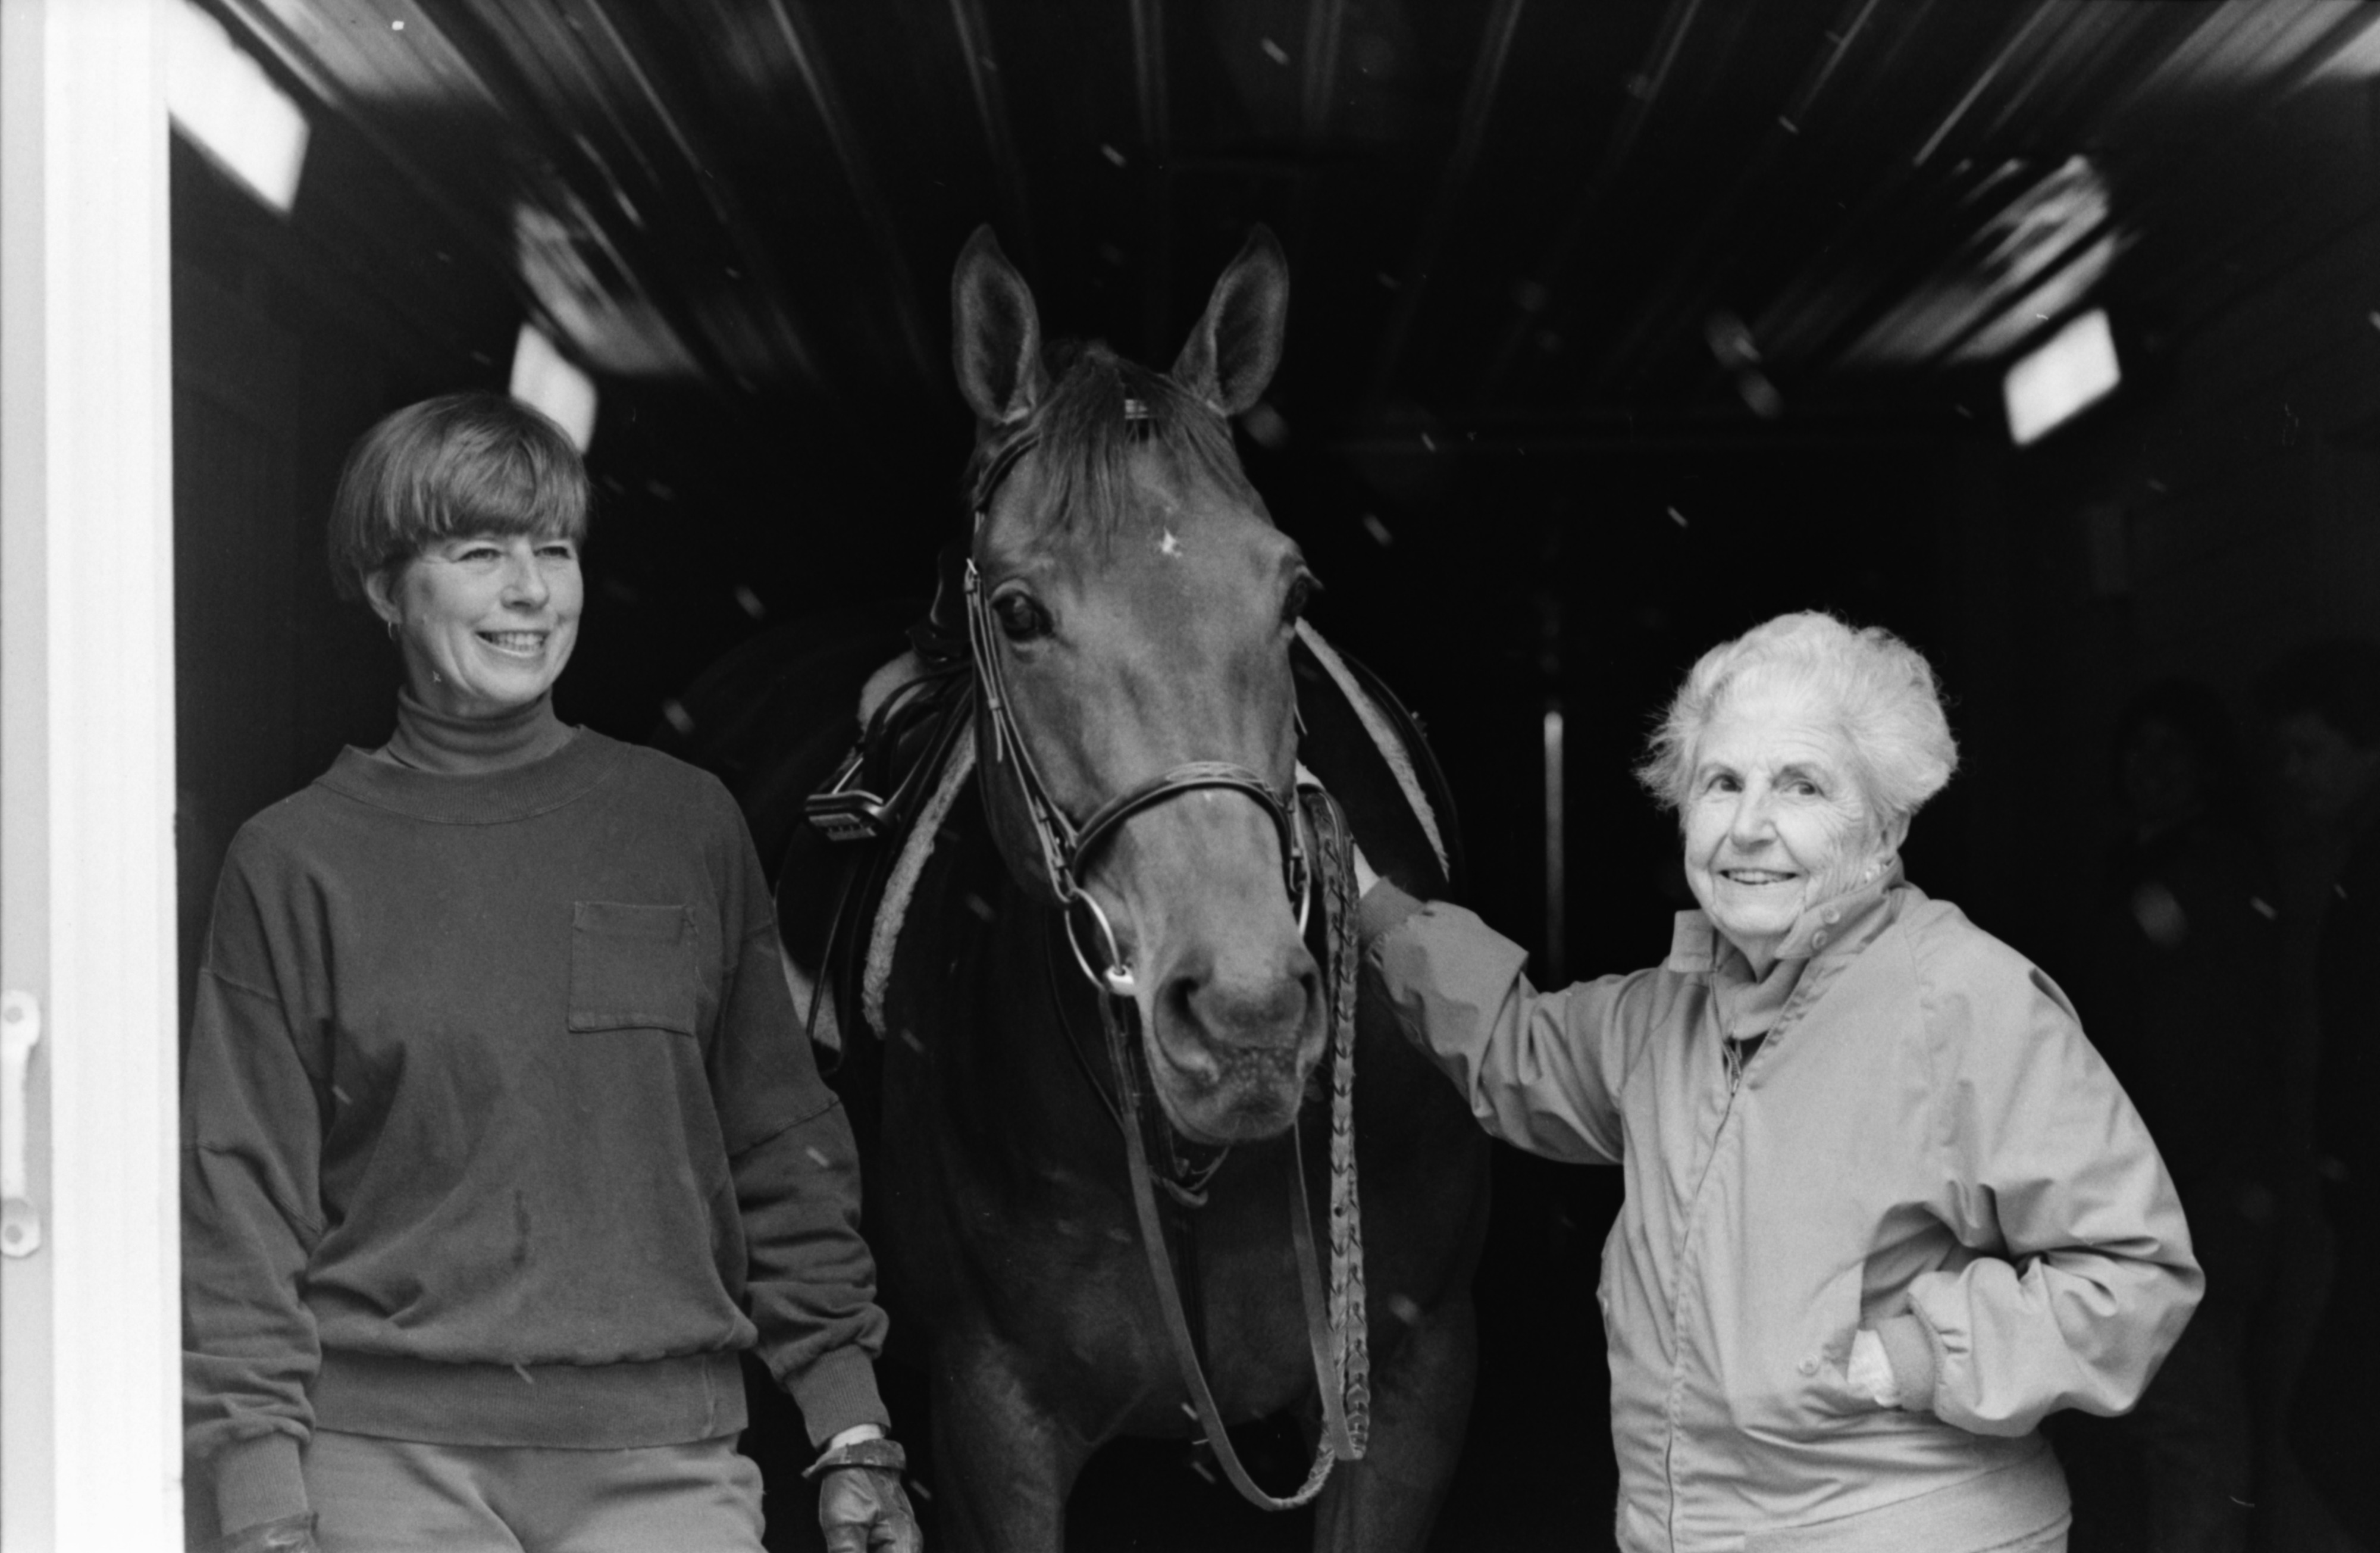 Ruth Everett and Cindy Carlson, with Elegant Jade, April 1991 image